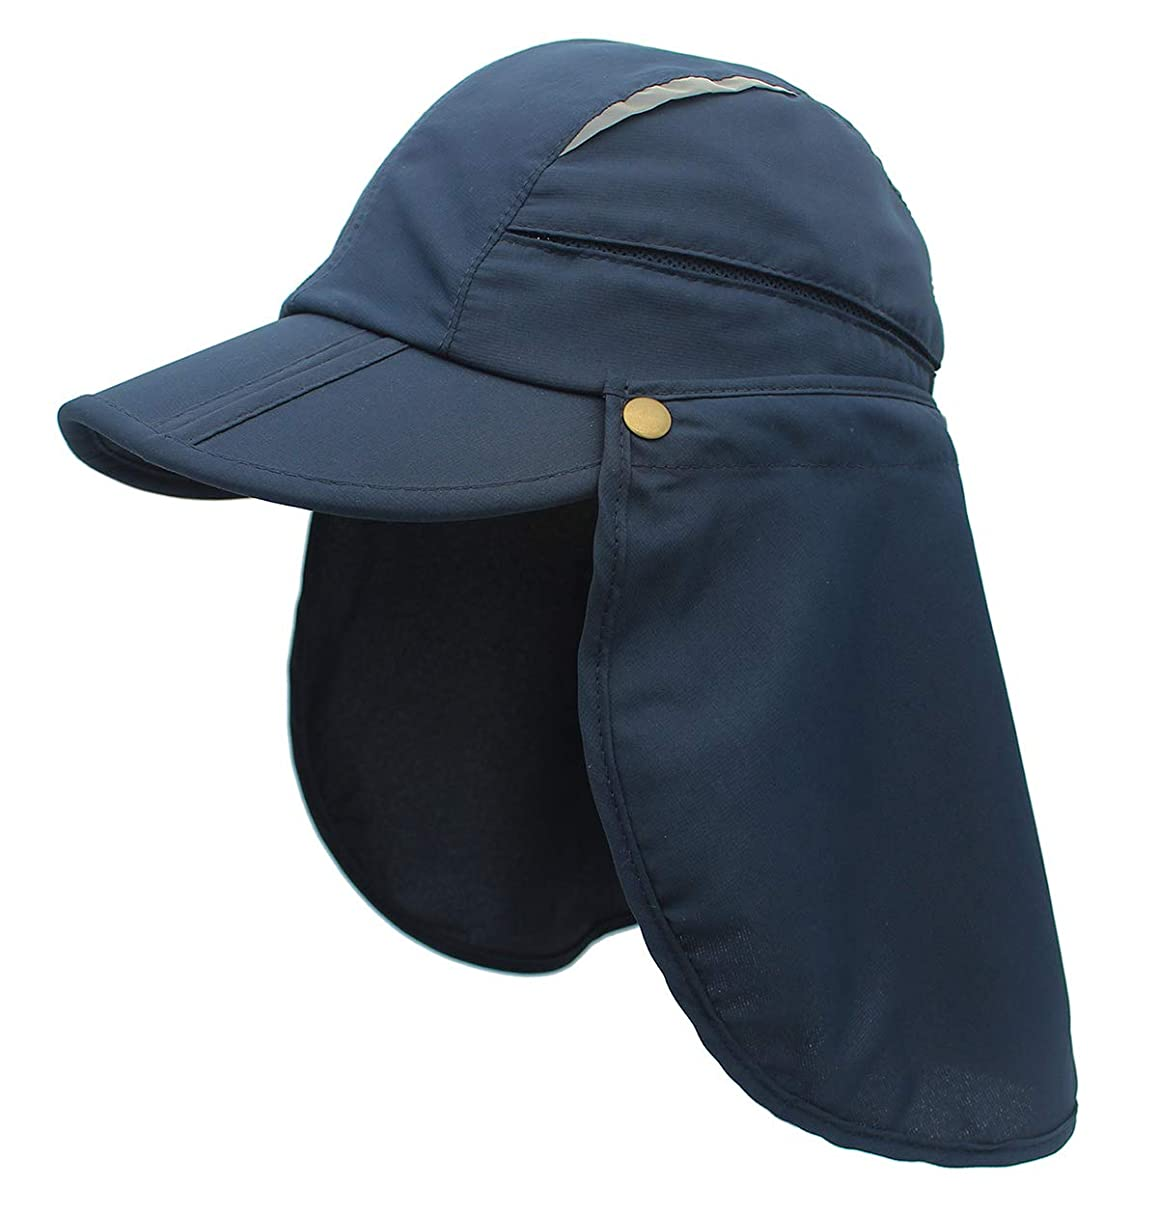 OUTFLY Unisex Outdoor Fishing Hat Polyester UPF 50+ Sun Protection Cap Beach Hats with Removable Neck Flap